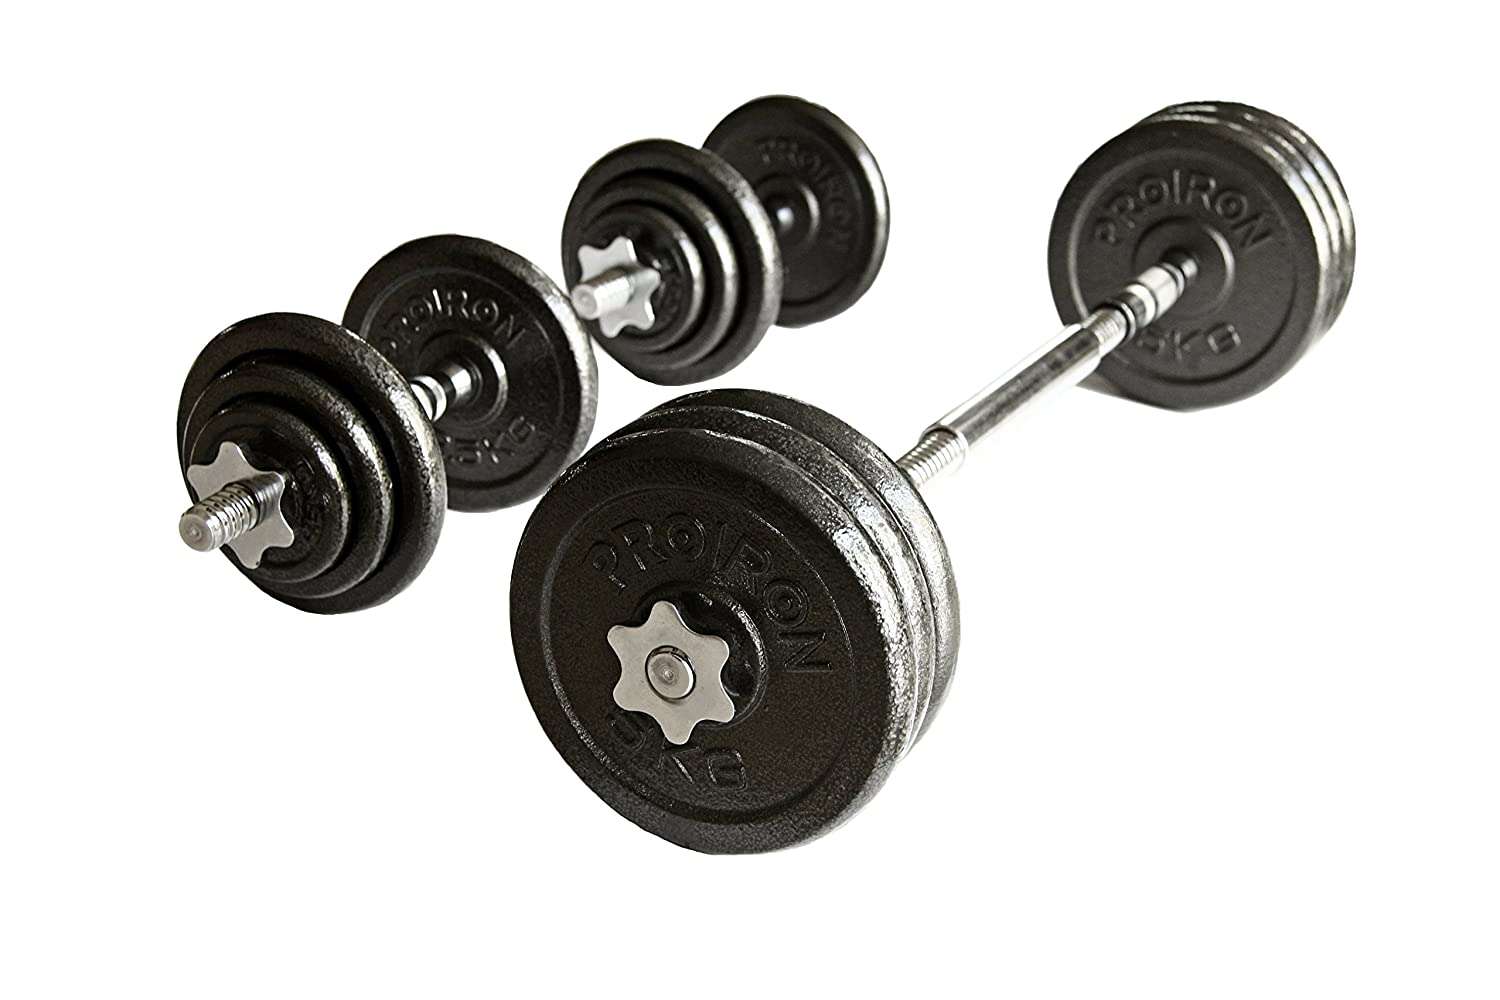 Pro-iron Weight Dumbbells, Barbells, Gym, Pro Fitness ...